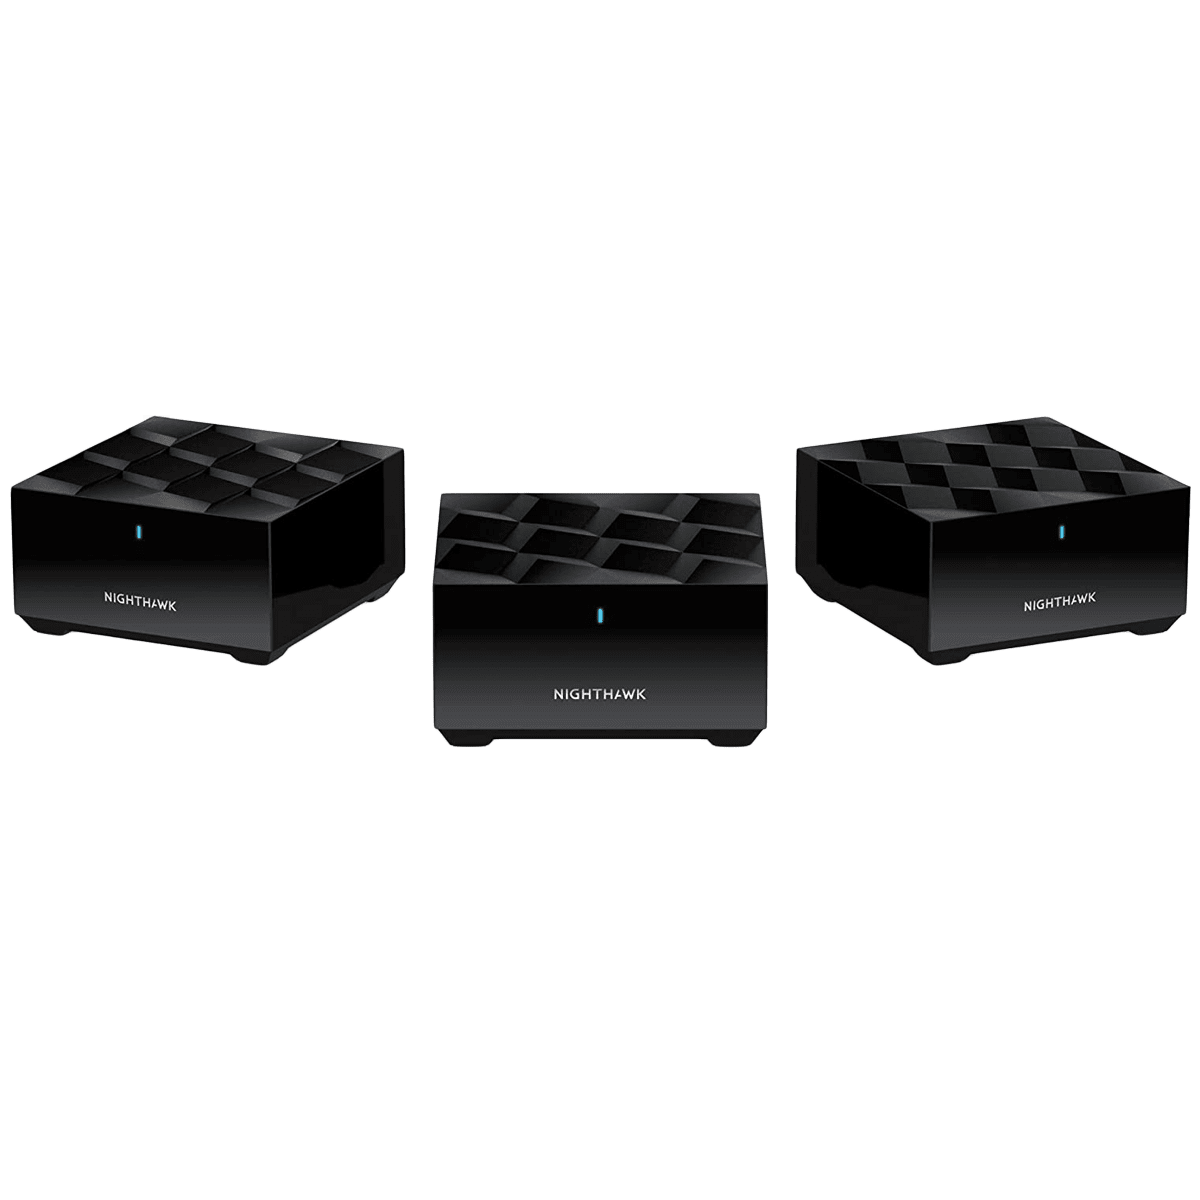 Netgear Nighthawk Dual Band 1.8 Gbps WiFi Home Mesh System (4 Antennas, Data Streaming, MK63, Black)